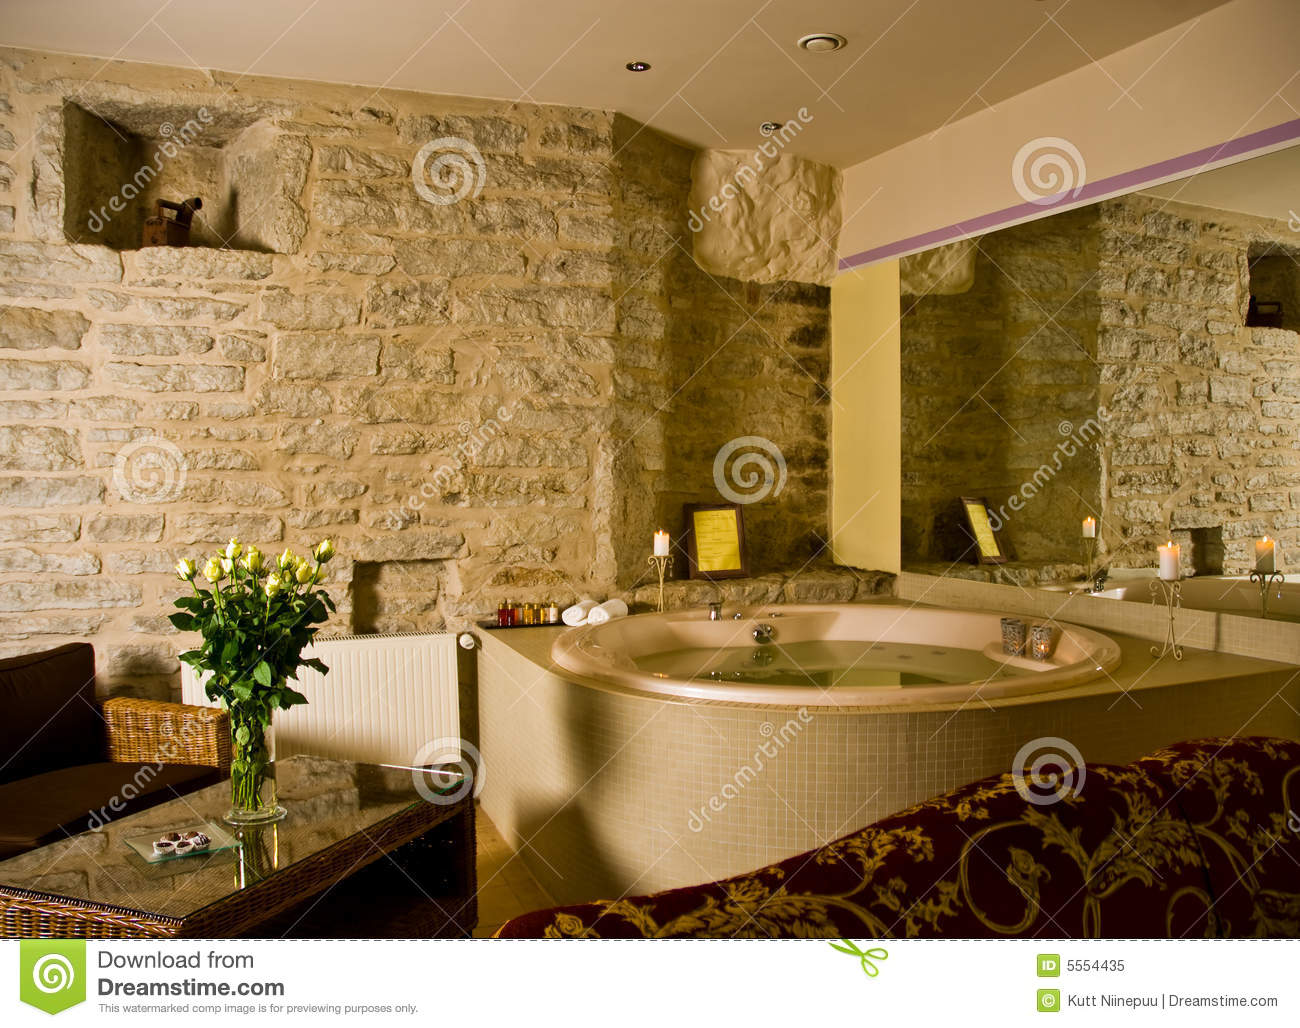 Jacuzzi Inside A Hotel Room Royalty Free Stock Photo